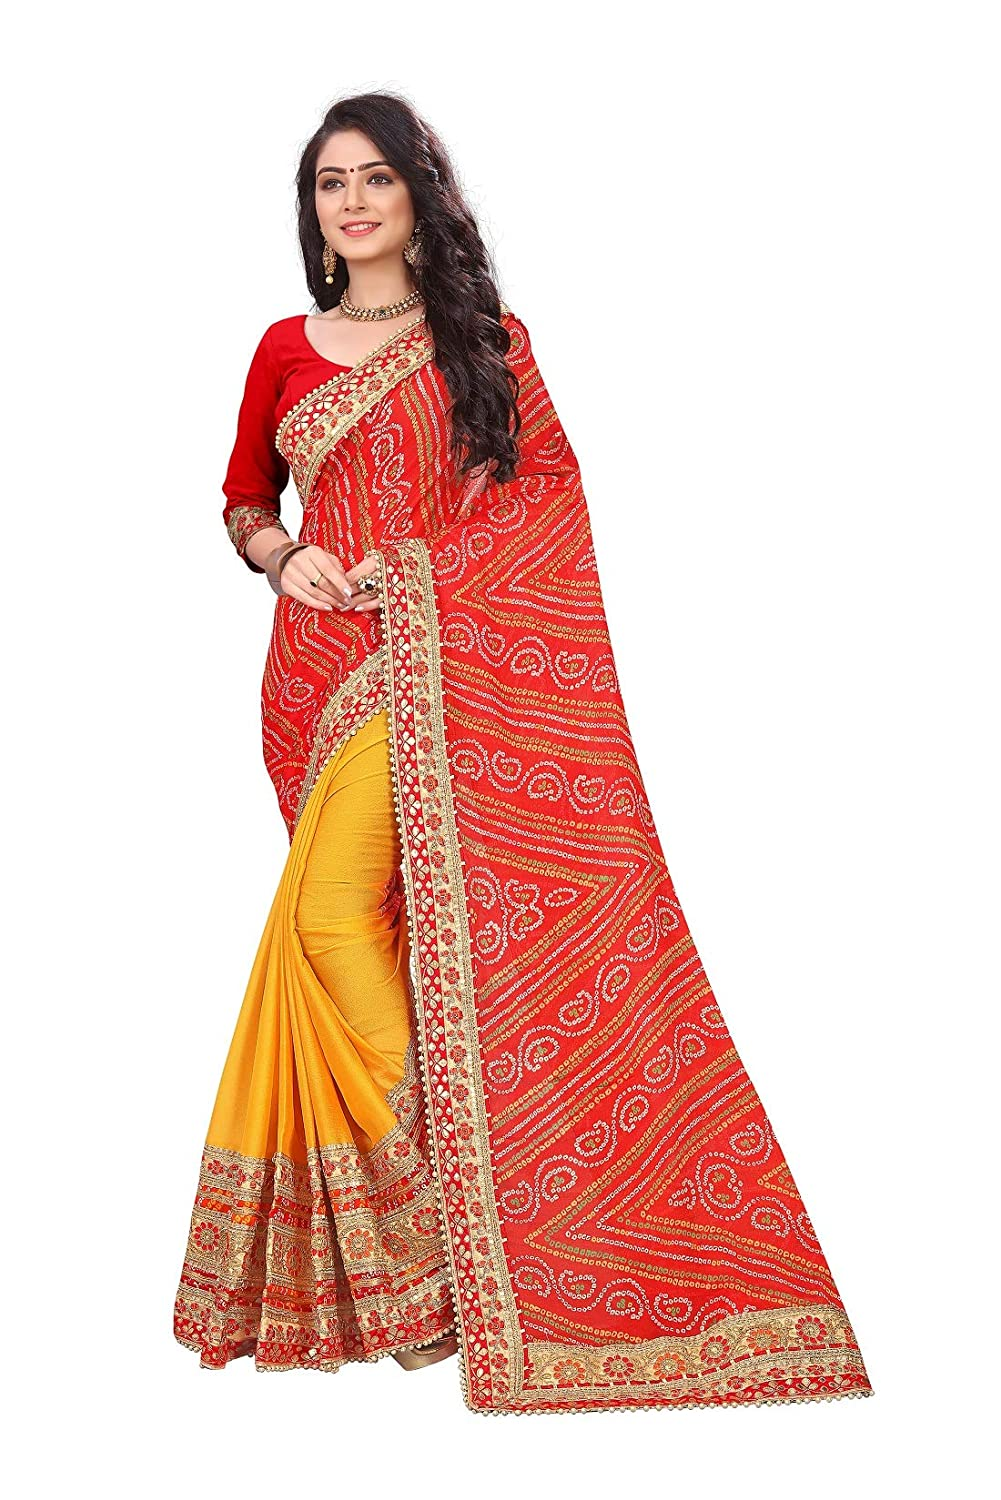 SARIKA Women's Bandhani Chiffon Saree With Blouse Piece - Kwirfy® -